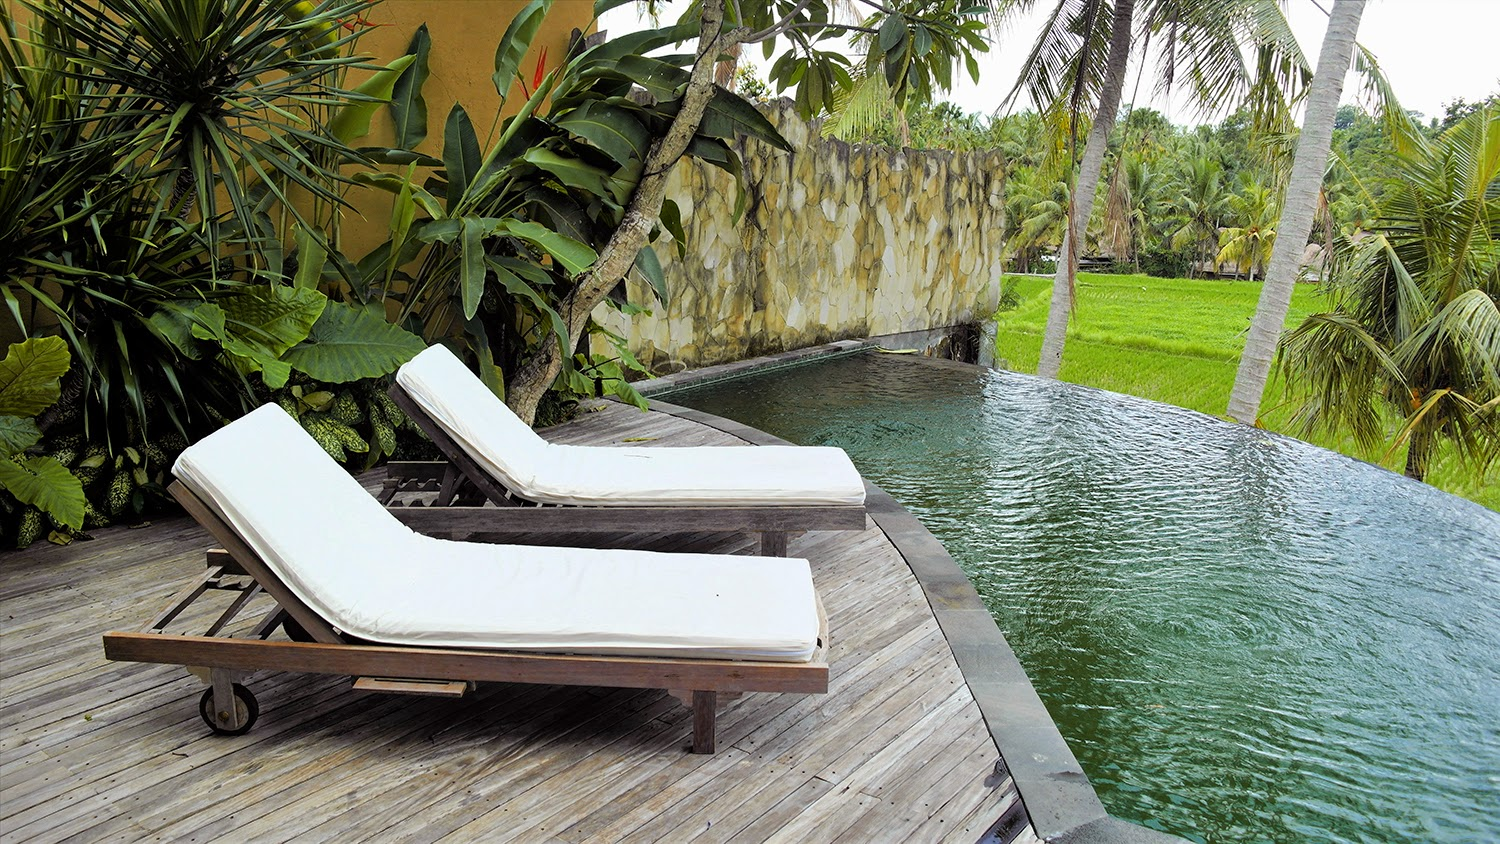 Hotel Met Prive Zwembad Ubud Bali Cuba Egypt France Italy The Netherlands And Spain